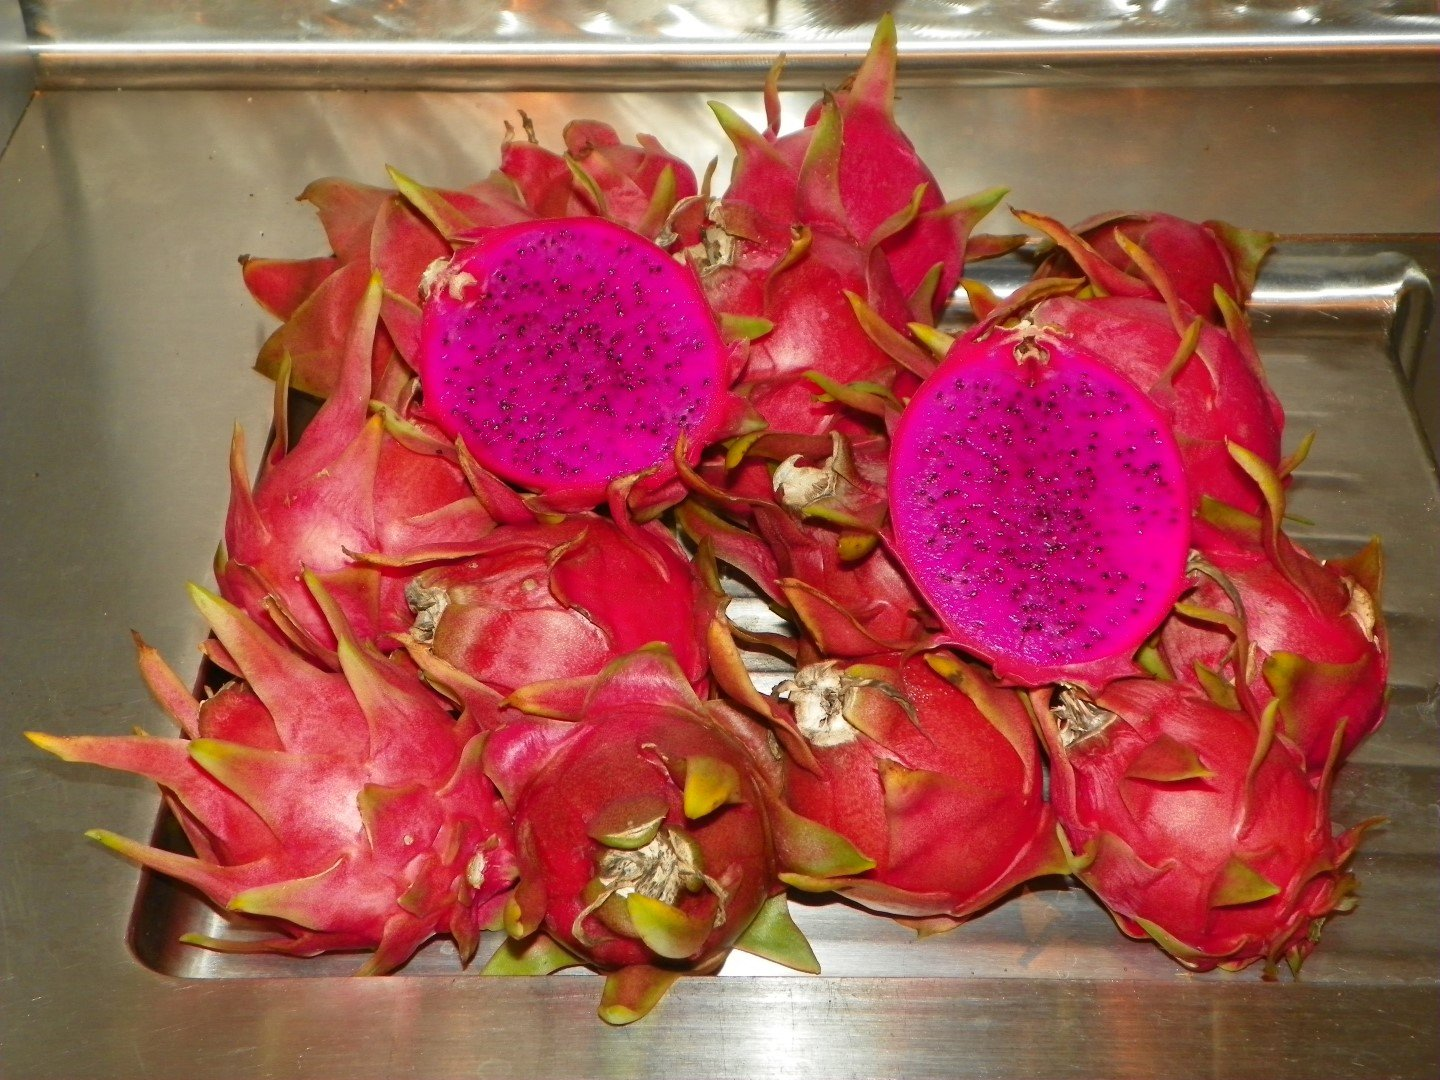 Dragon Fruit variety Dark Star fruit sliced harvist